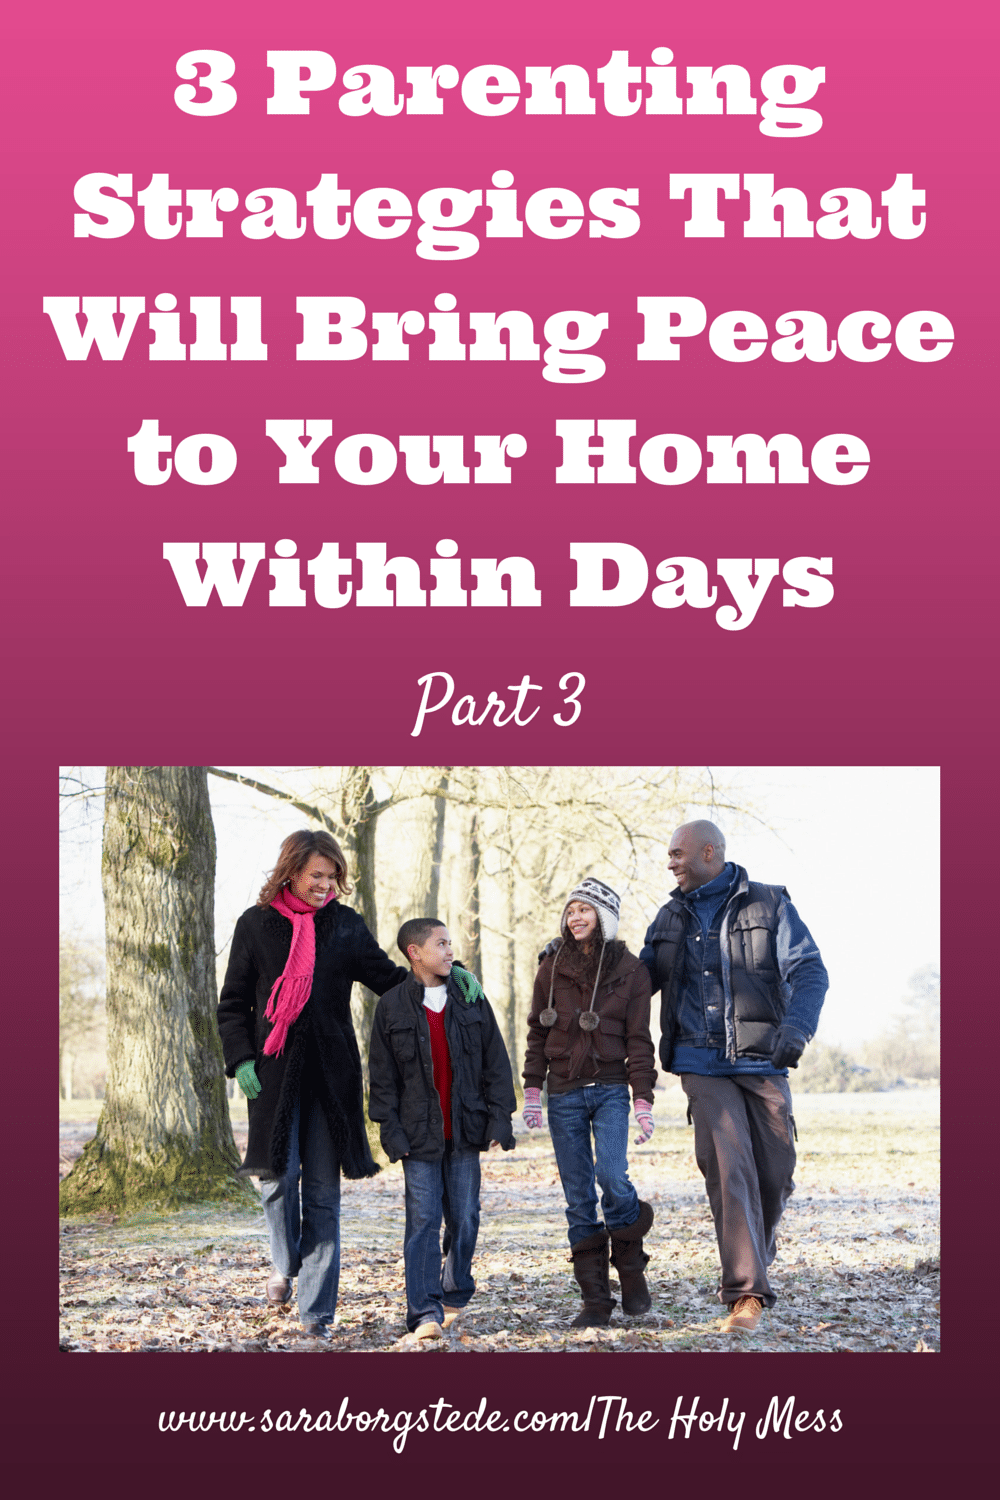 3 Parenting Strategies that Will Bring Peace to Your Home Within Days: Part 3